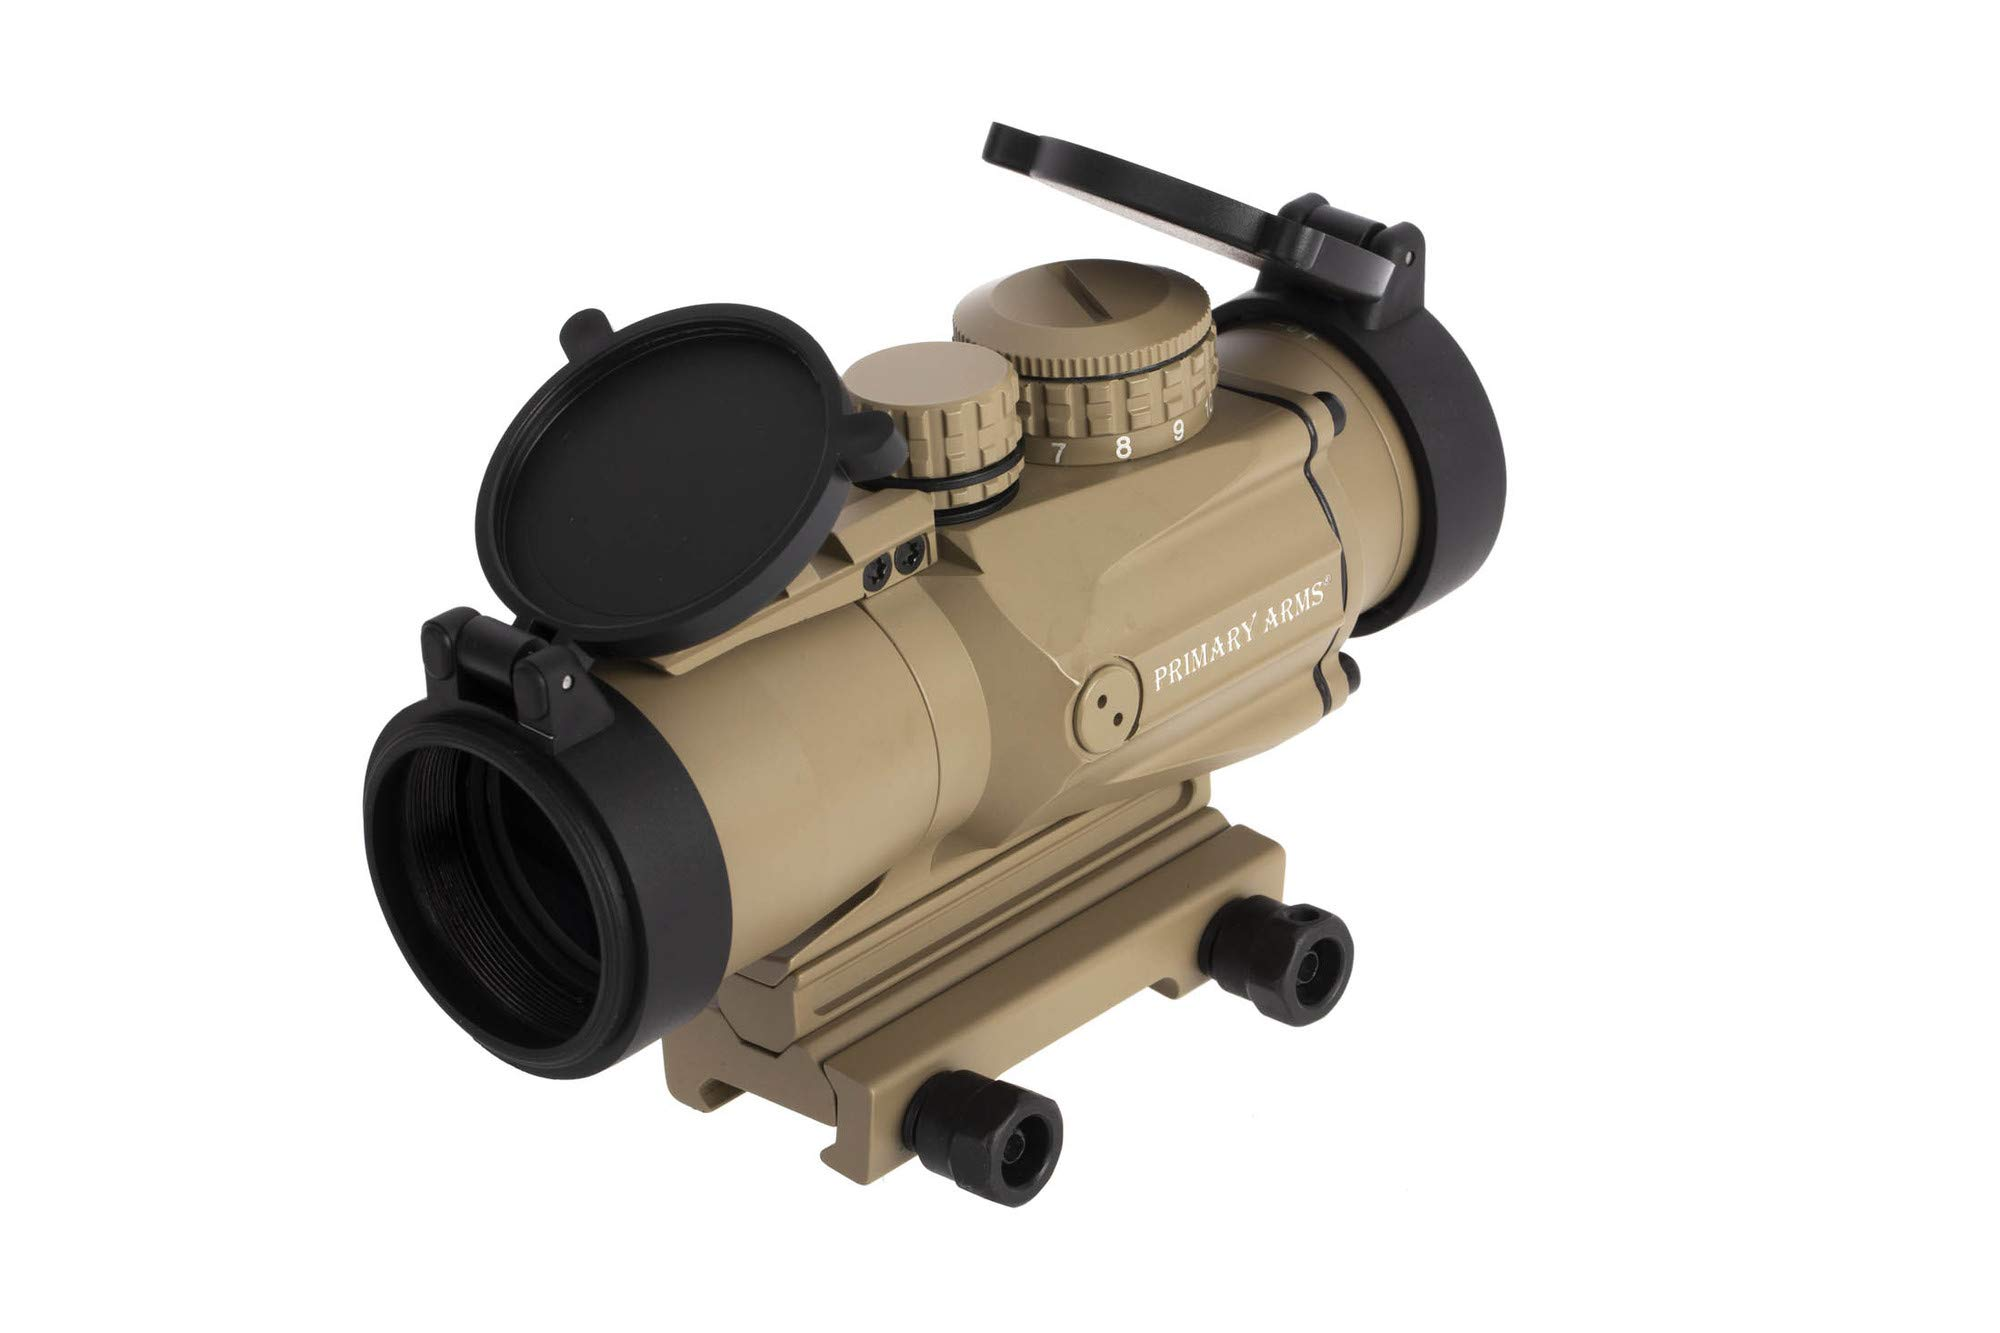 Primary Arms SLxP3 Compact 3x32 Gen II Prism Scope - ACSS-5.56-CQB-M2 - FDE by Primary Arms